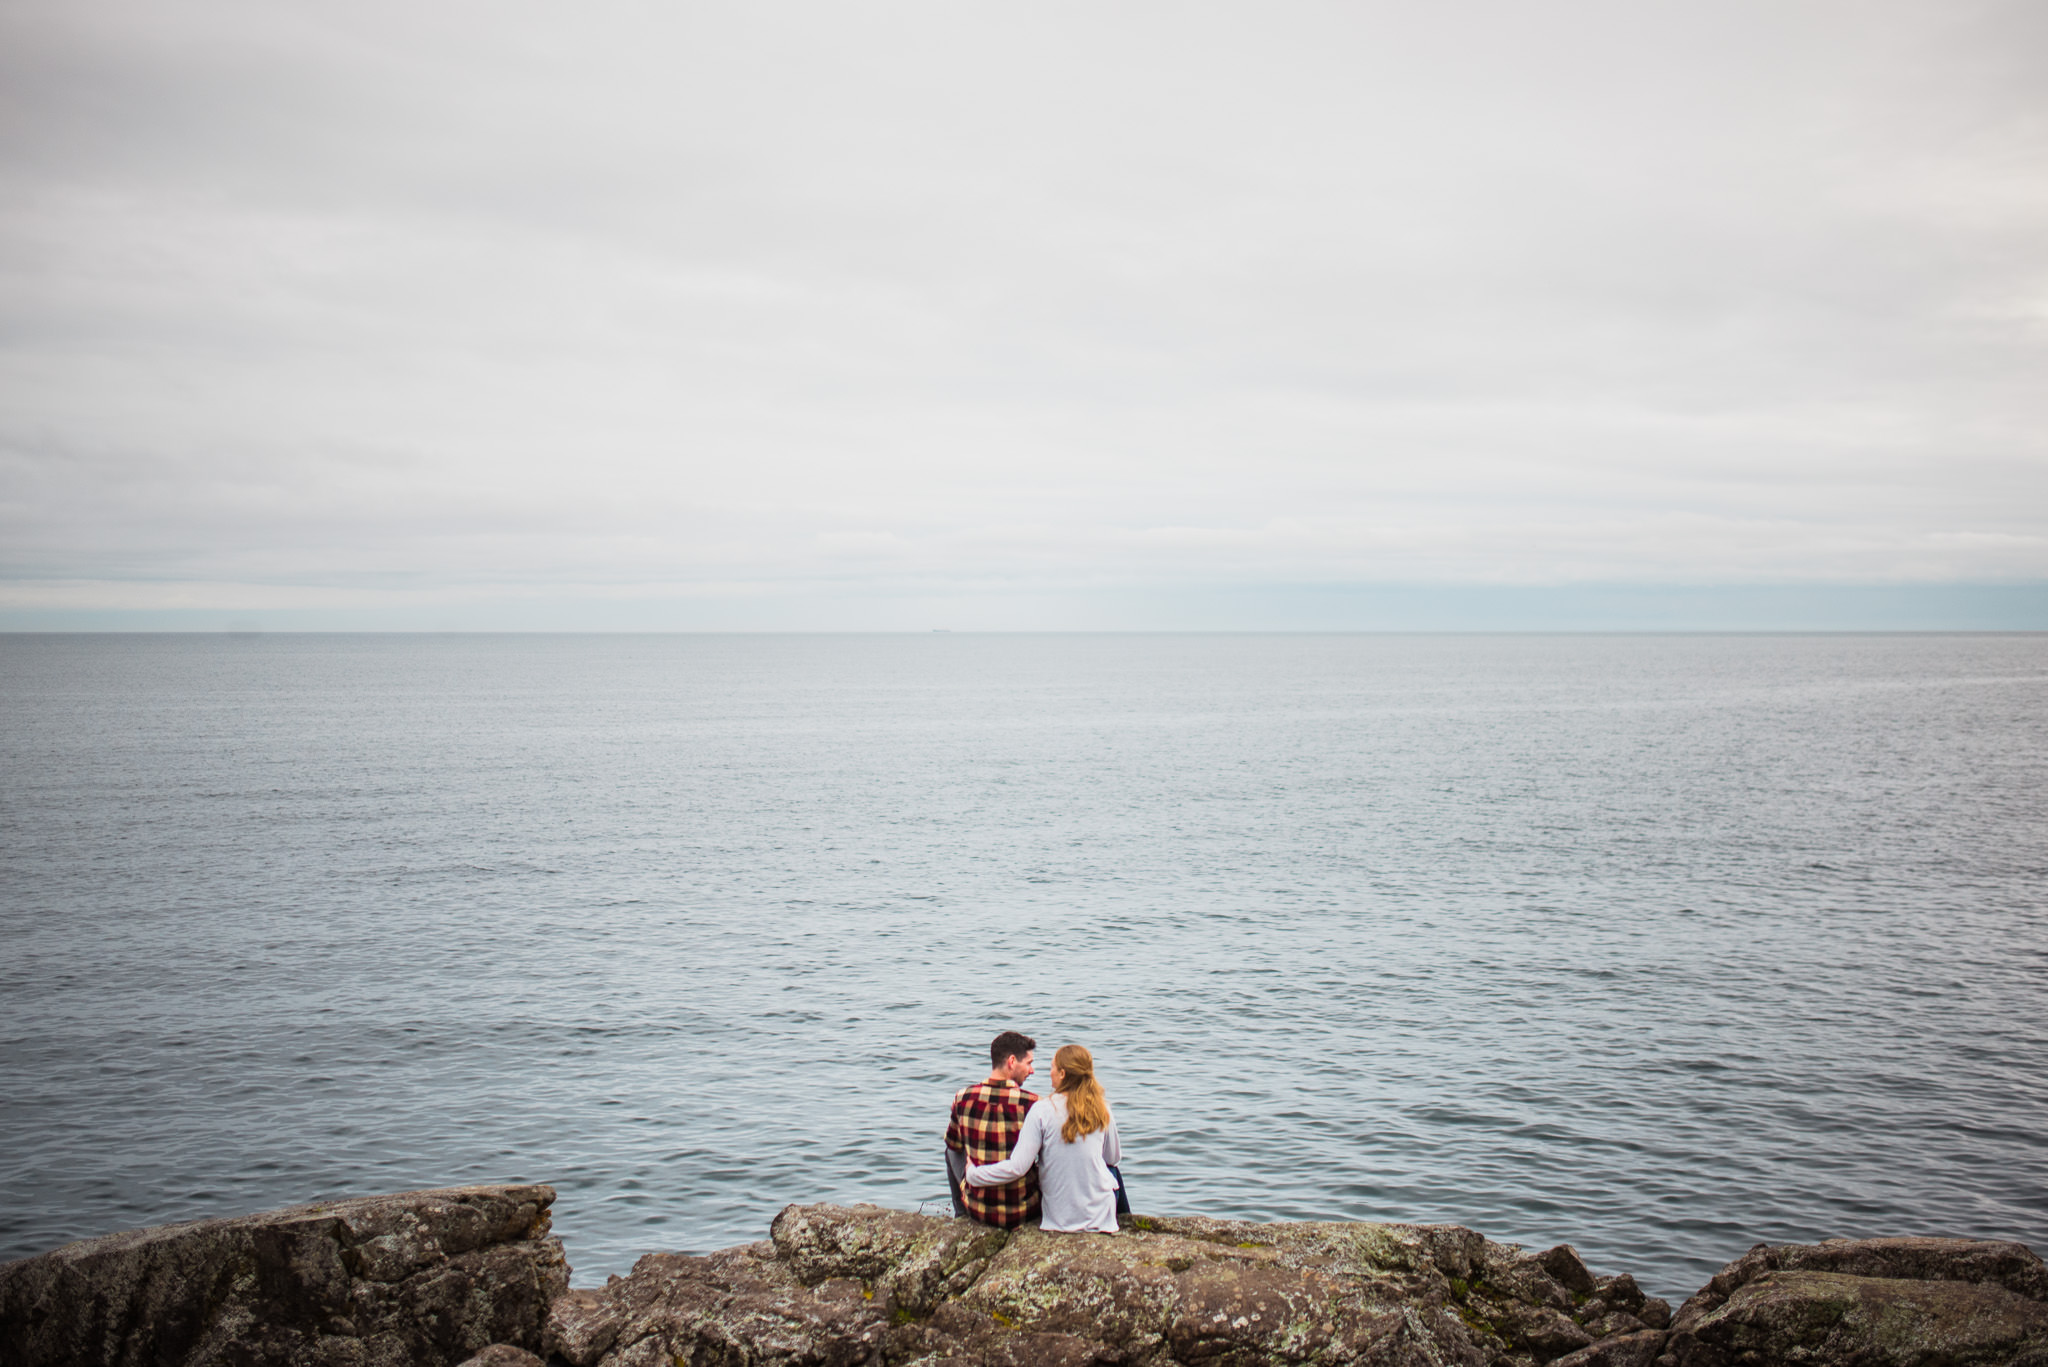 victoria-wedding-photographers-devonian-regional-park-engagement-photos-13.jpg